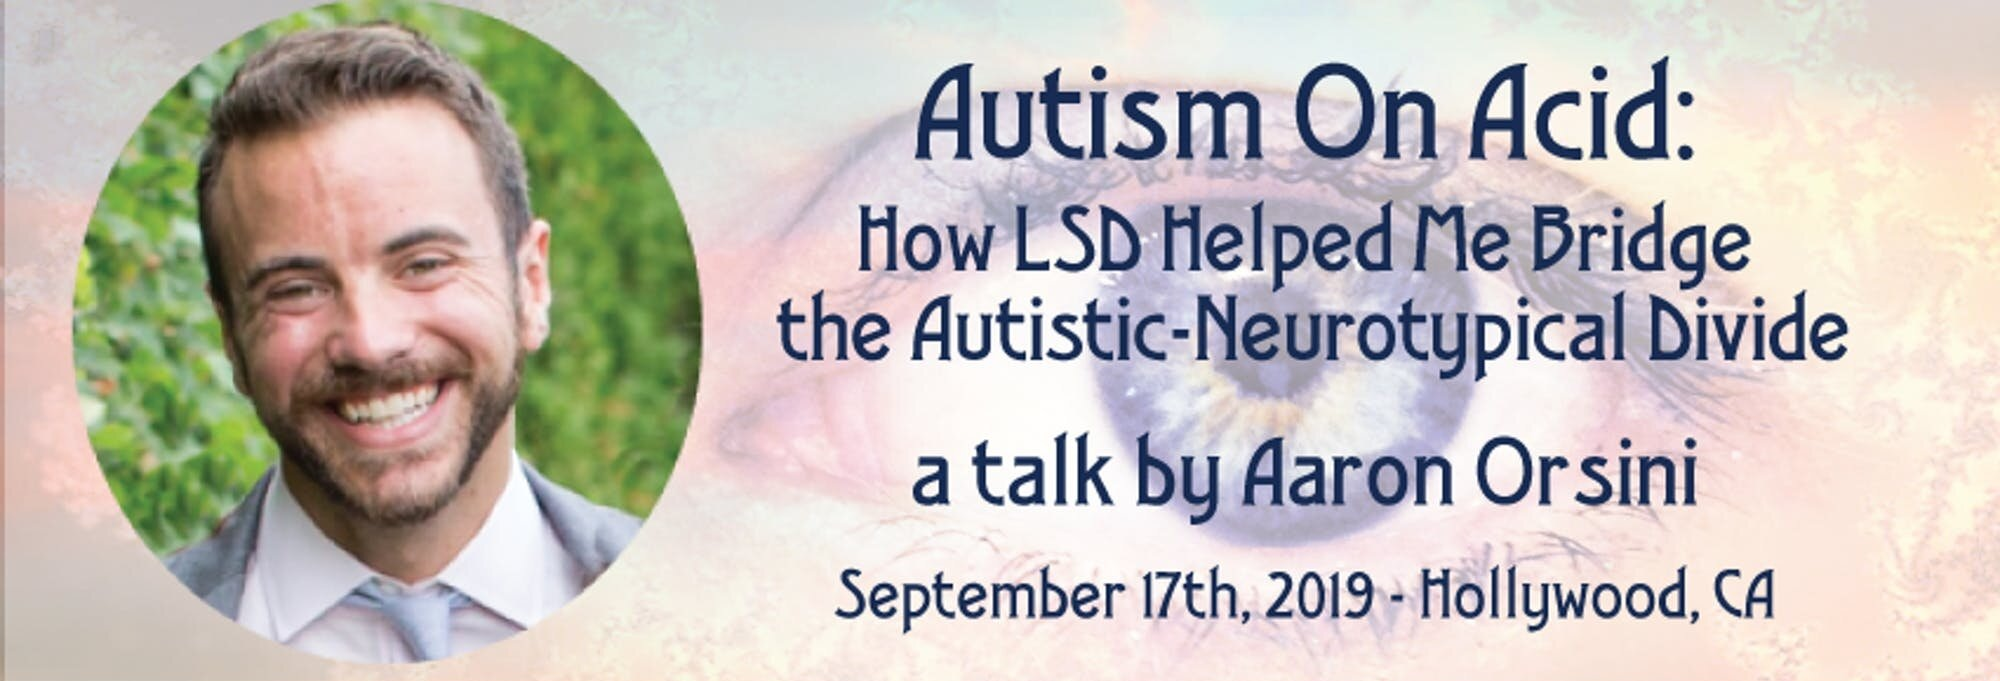 Autism+On+Acid%3A+How+LSD+Helped+Me+Bridge+the+Autistic-Neurotypical+Divide